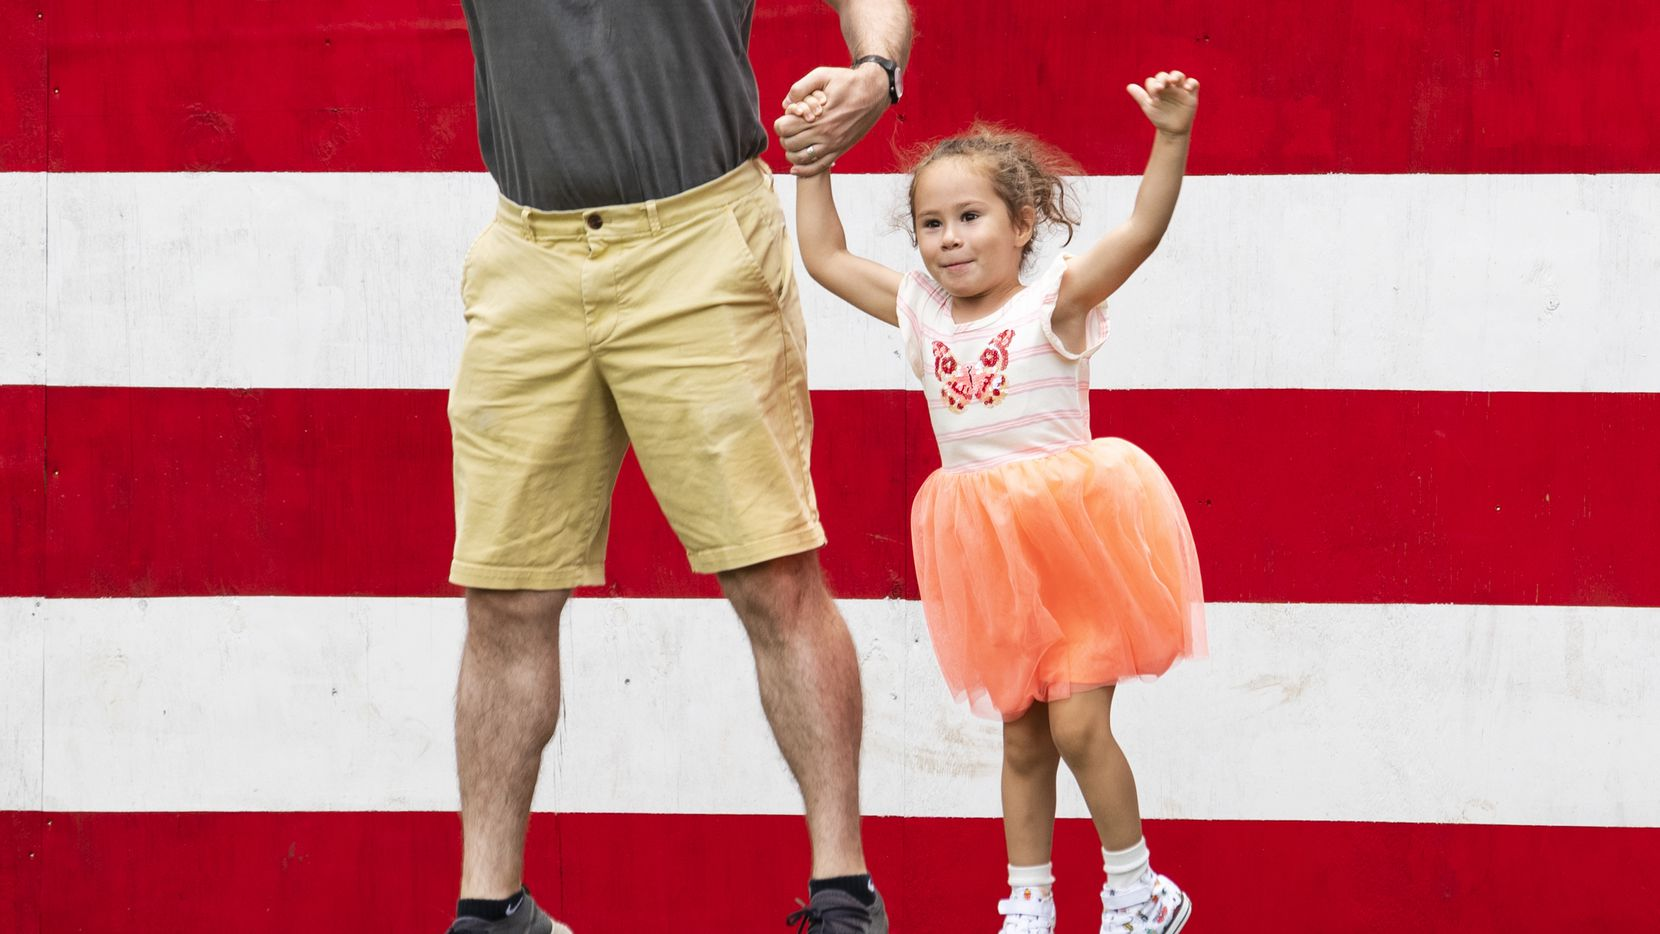 Daphney Mitchell, 4, leaps with her fauther, Jess Mitchell as her mother photographed them by a painted American flag at the Dallas Arboretum on Saturday, July 3, 2021.